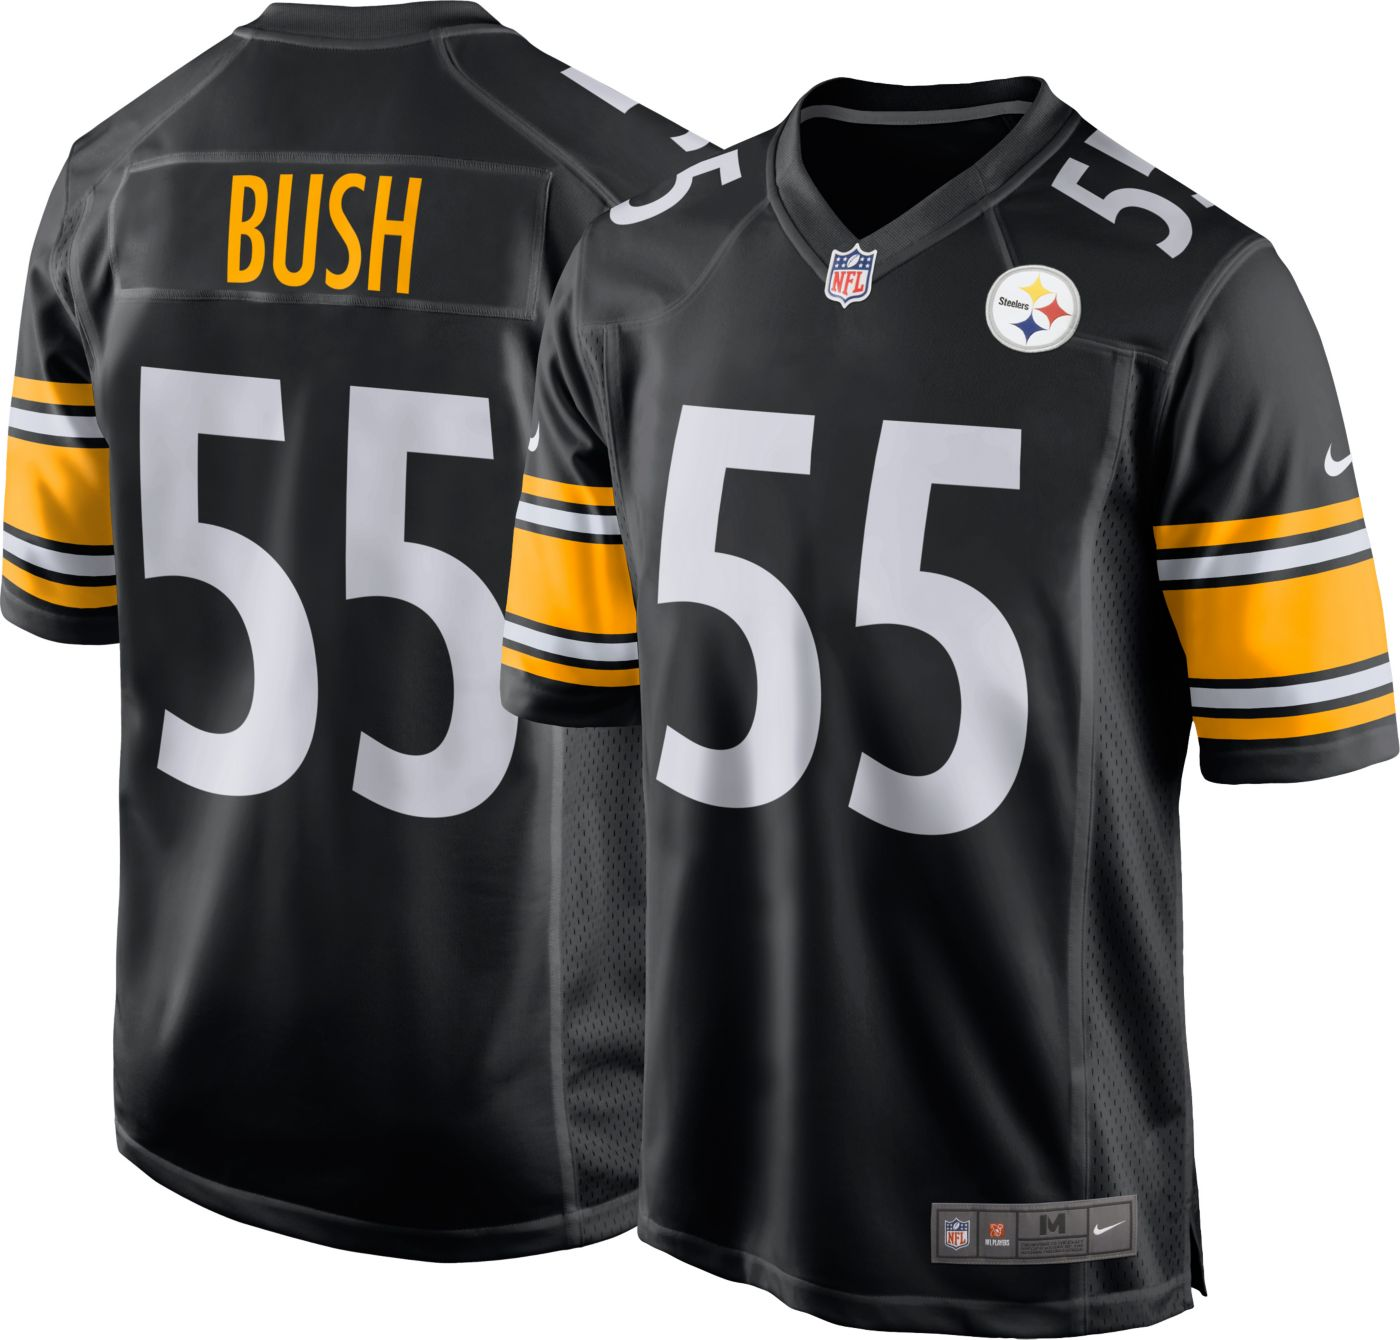 Devin Bush #55 Nike Men's Pittsburgh Steelers Home Game Jersey